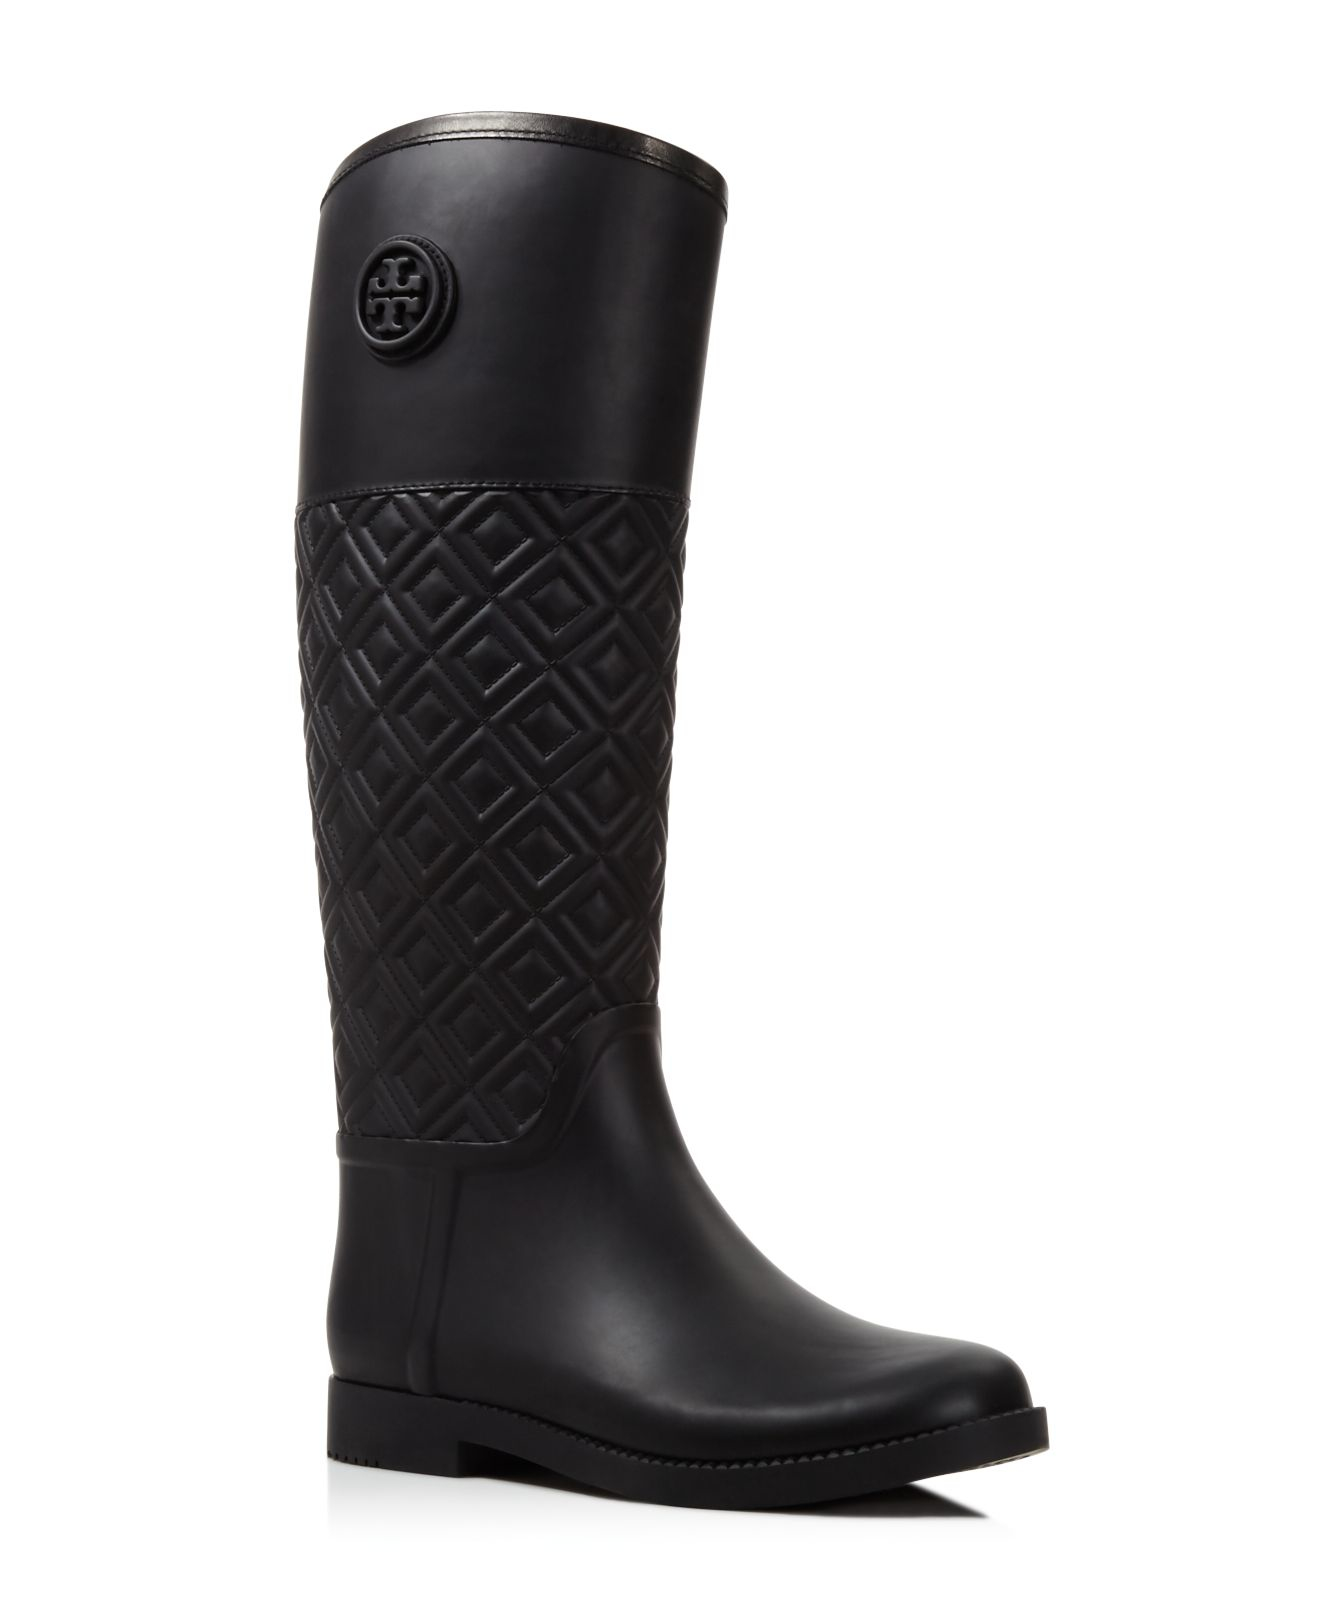 Tory burch Marion Quilted Rain Boots in Black | Lyst